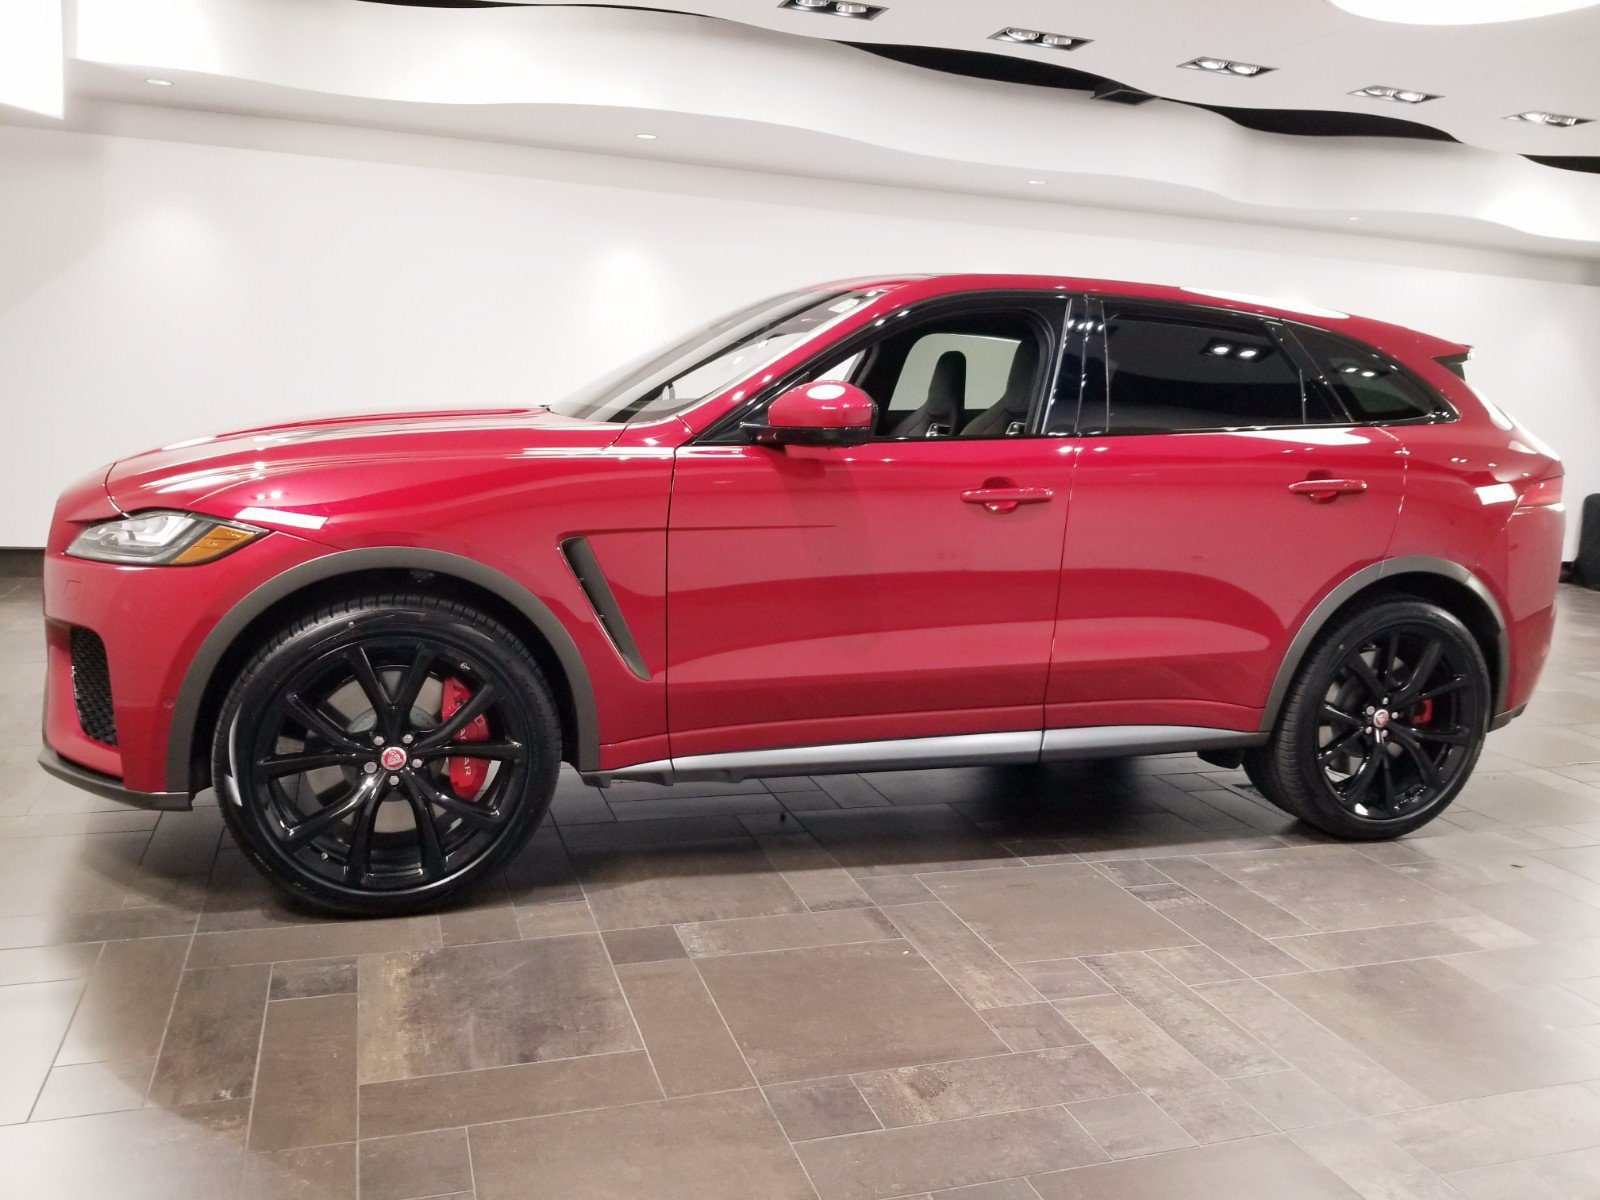 New 2020 Jaguar F-PACE SVR SUV in West Palm Beach #J21777 ...